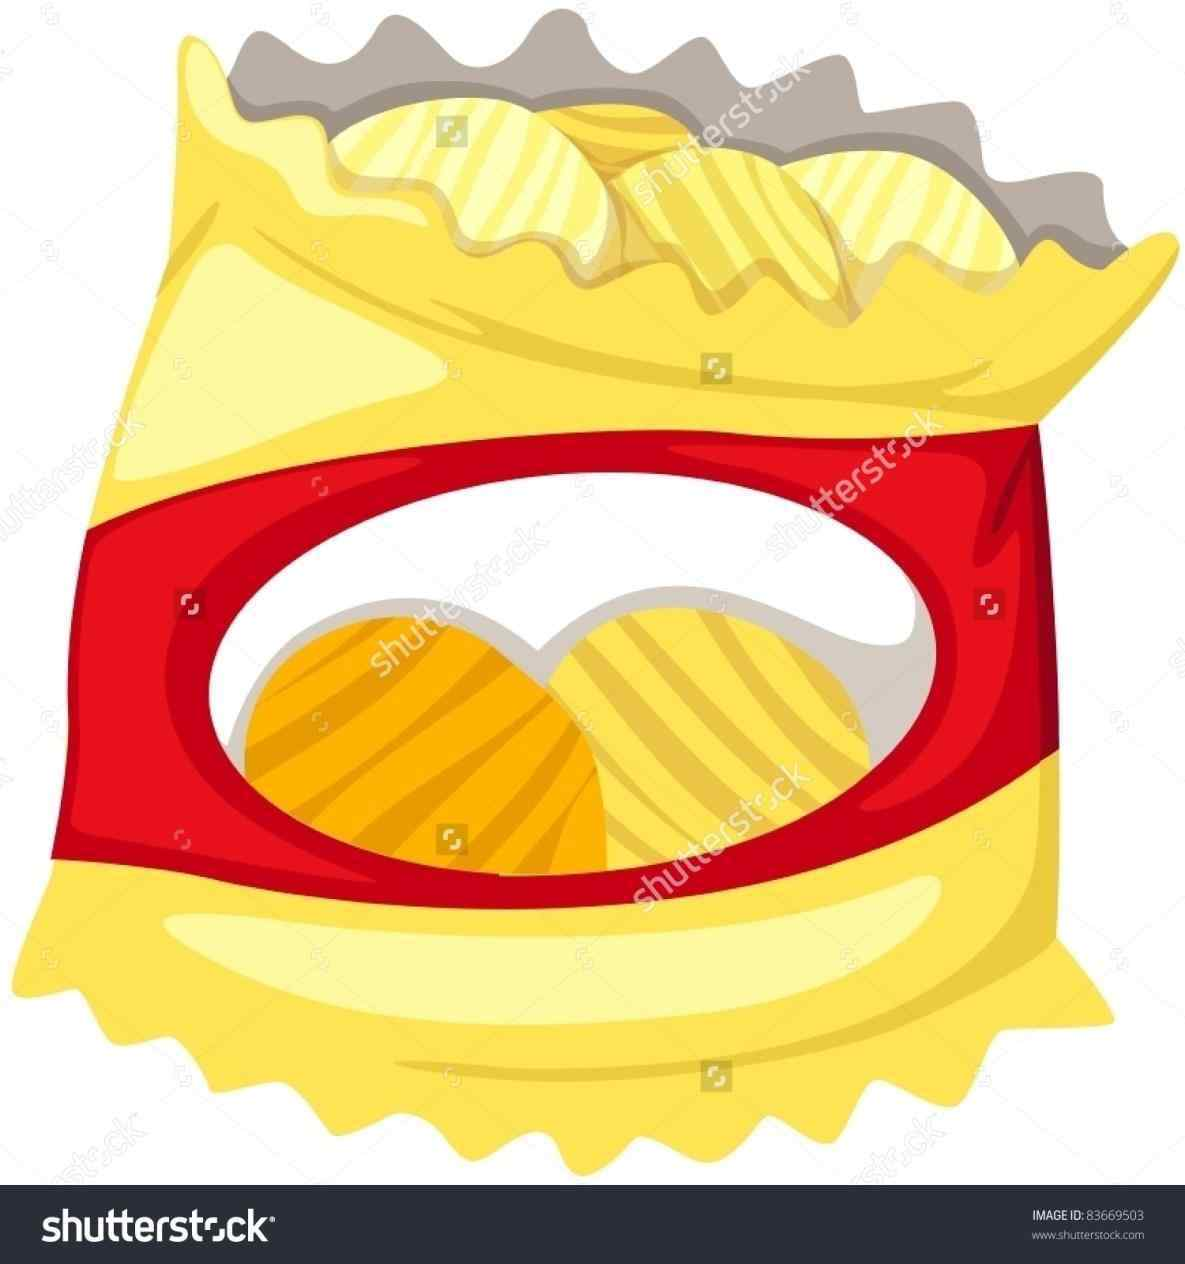 Chips clipart. Food pencil and in